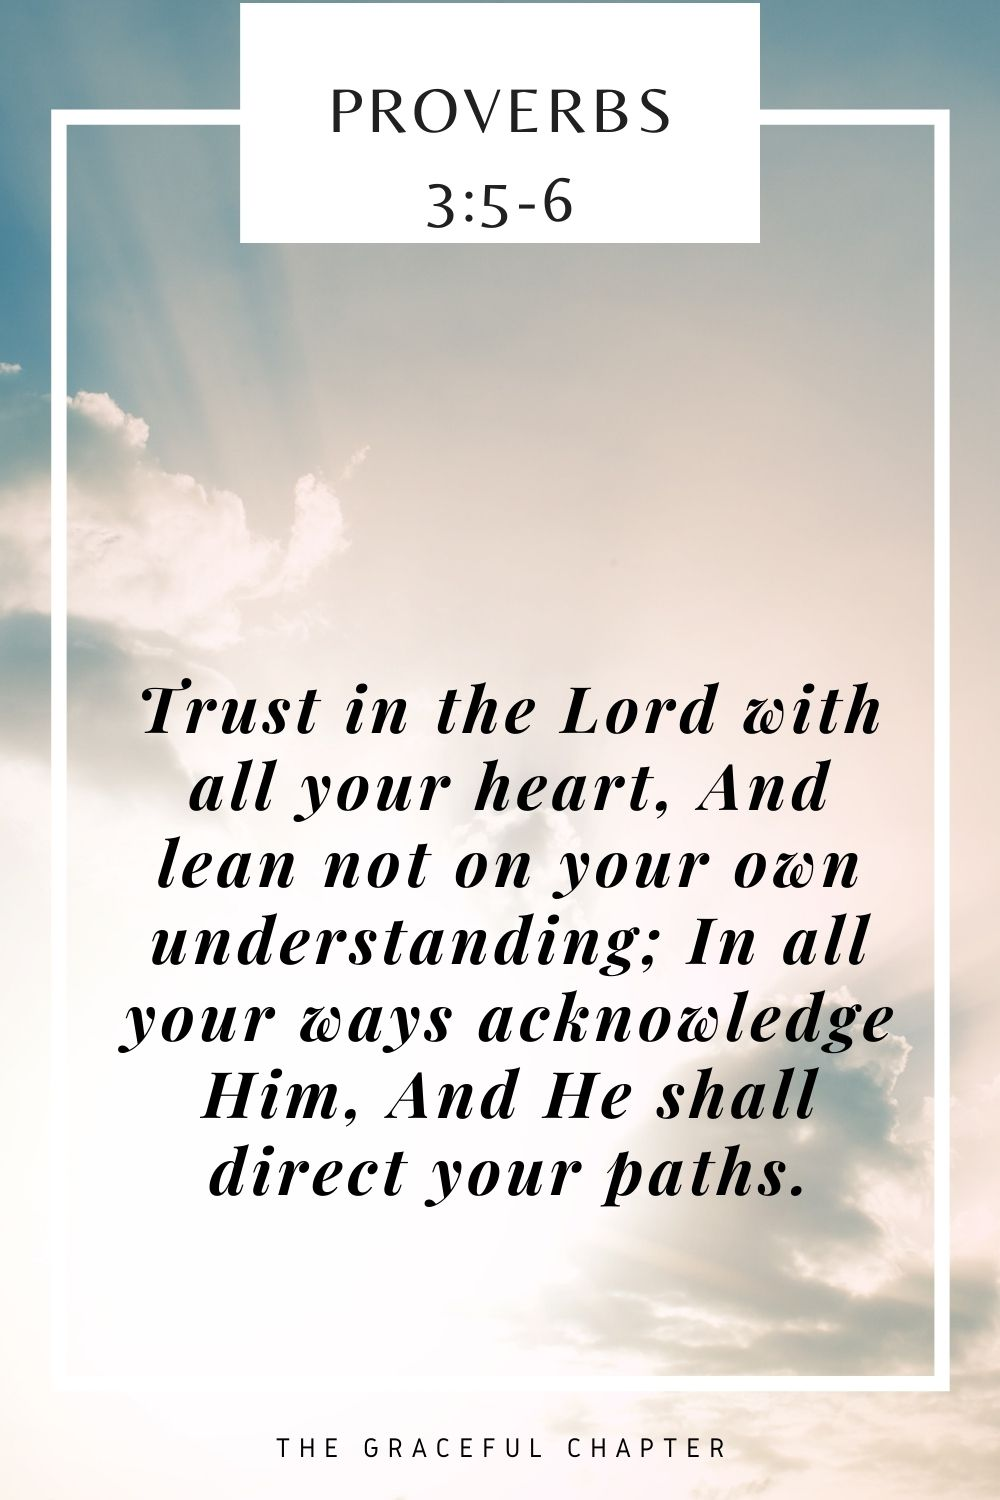 Trust in the Lord with all your heart, And lean not on your own understanding; In all your ways acknowledge Him, And He shall direct your paths. Proverbs 3:5-6